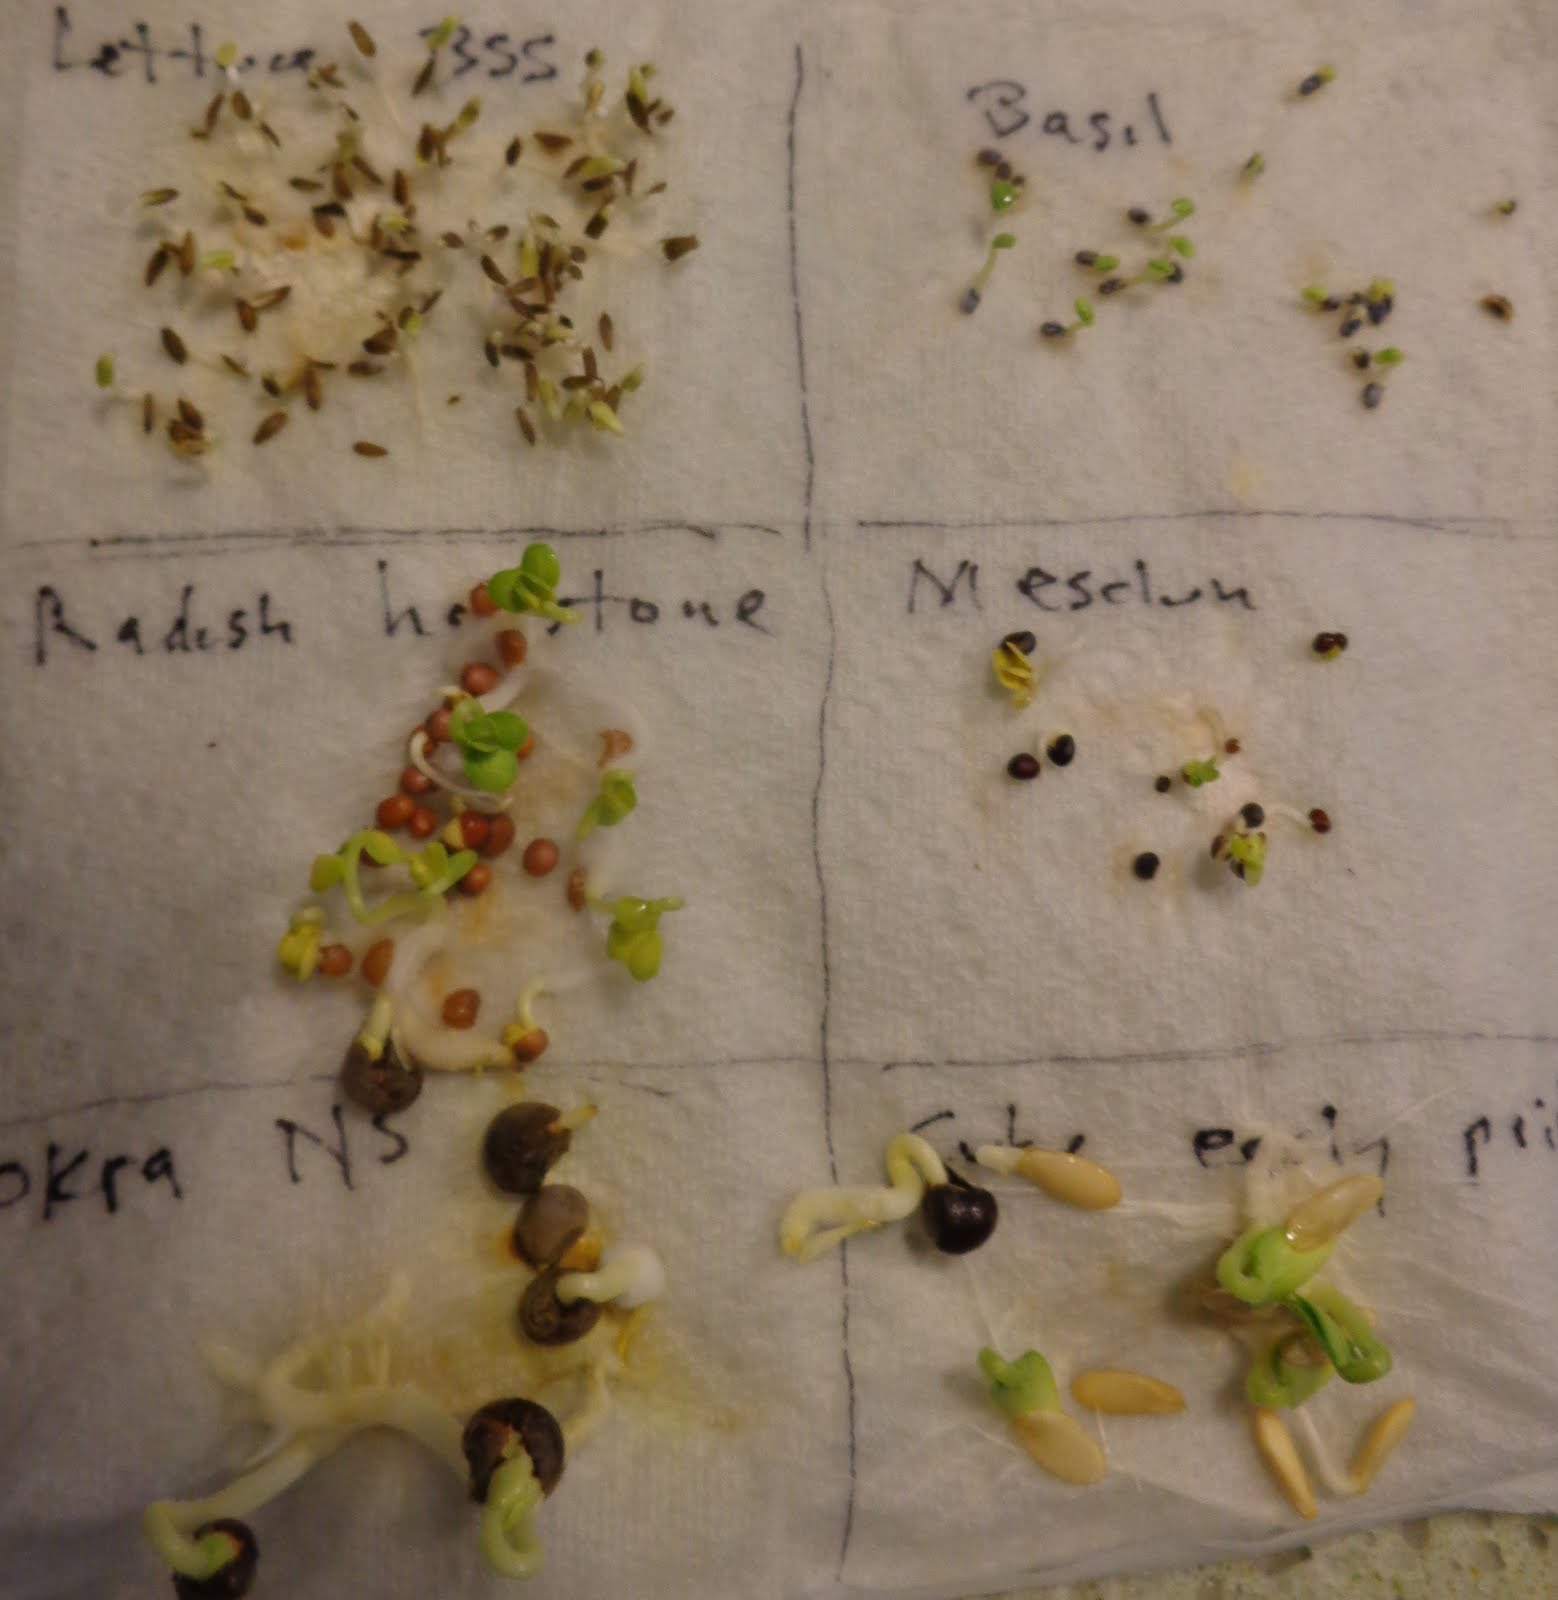 allelopathy affects germination of radish seeds Results of alfalfa-leaf extract treatment on rye and 7 and radish seed germination • describe the observable effects of allelopathy on seed germination.